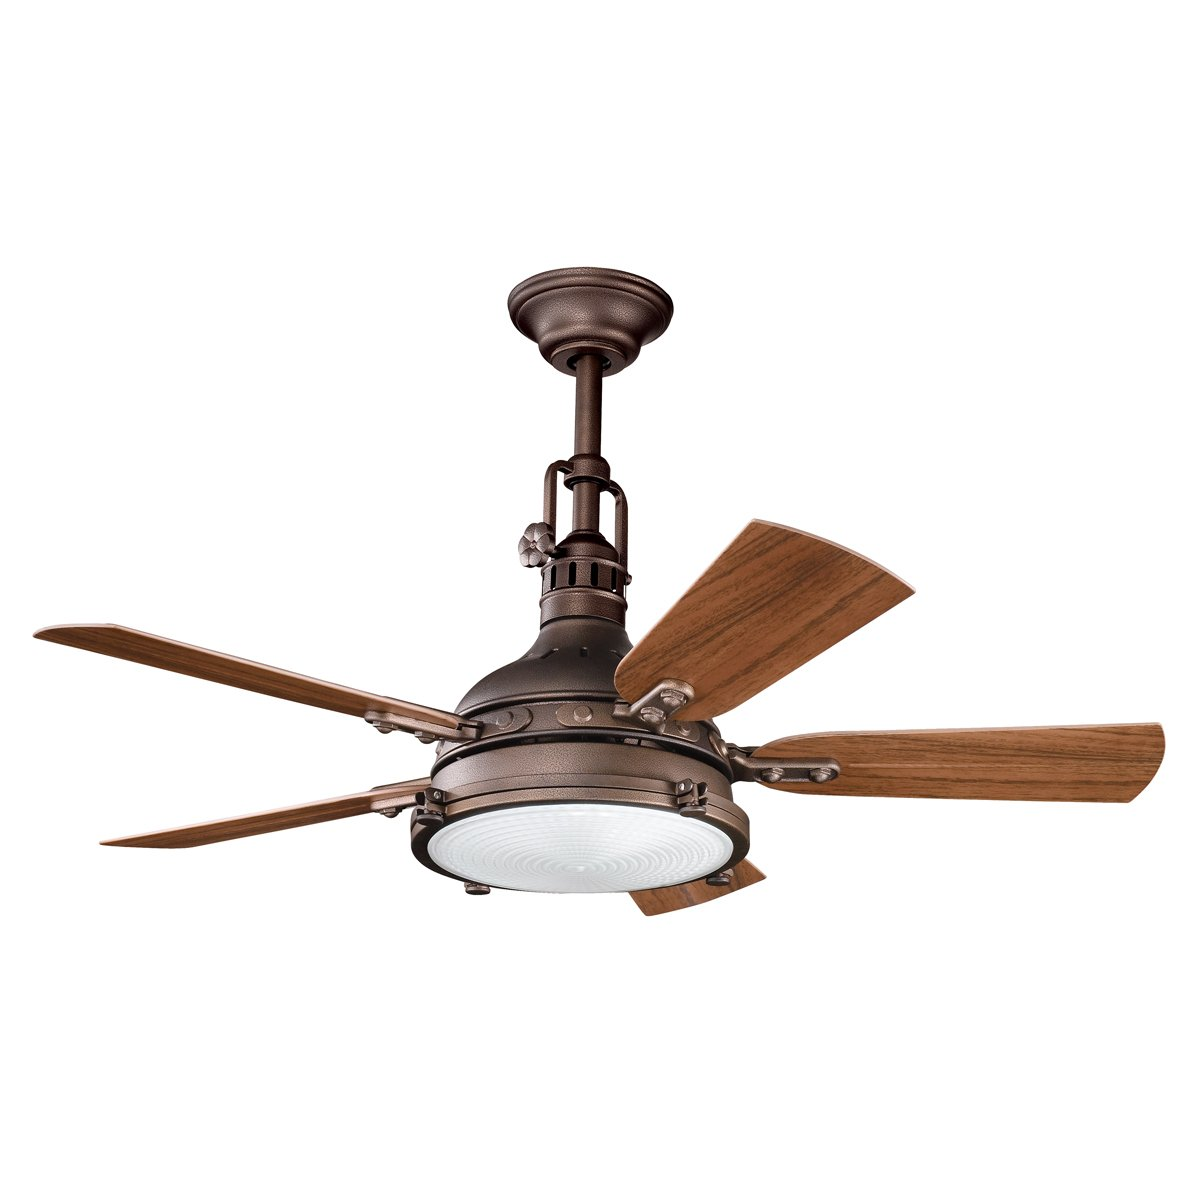 white ceiling overstock fan product monte shipping ceilings today home ii carlo inch fans discus free garden